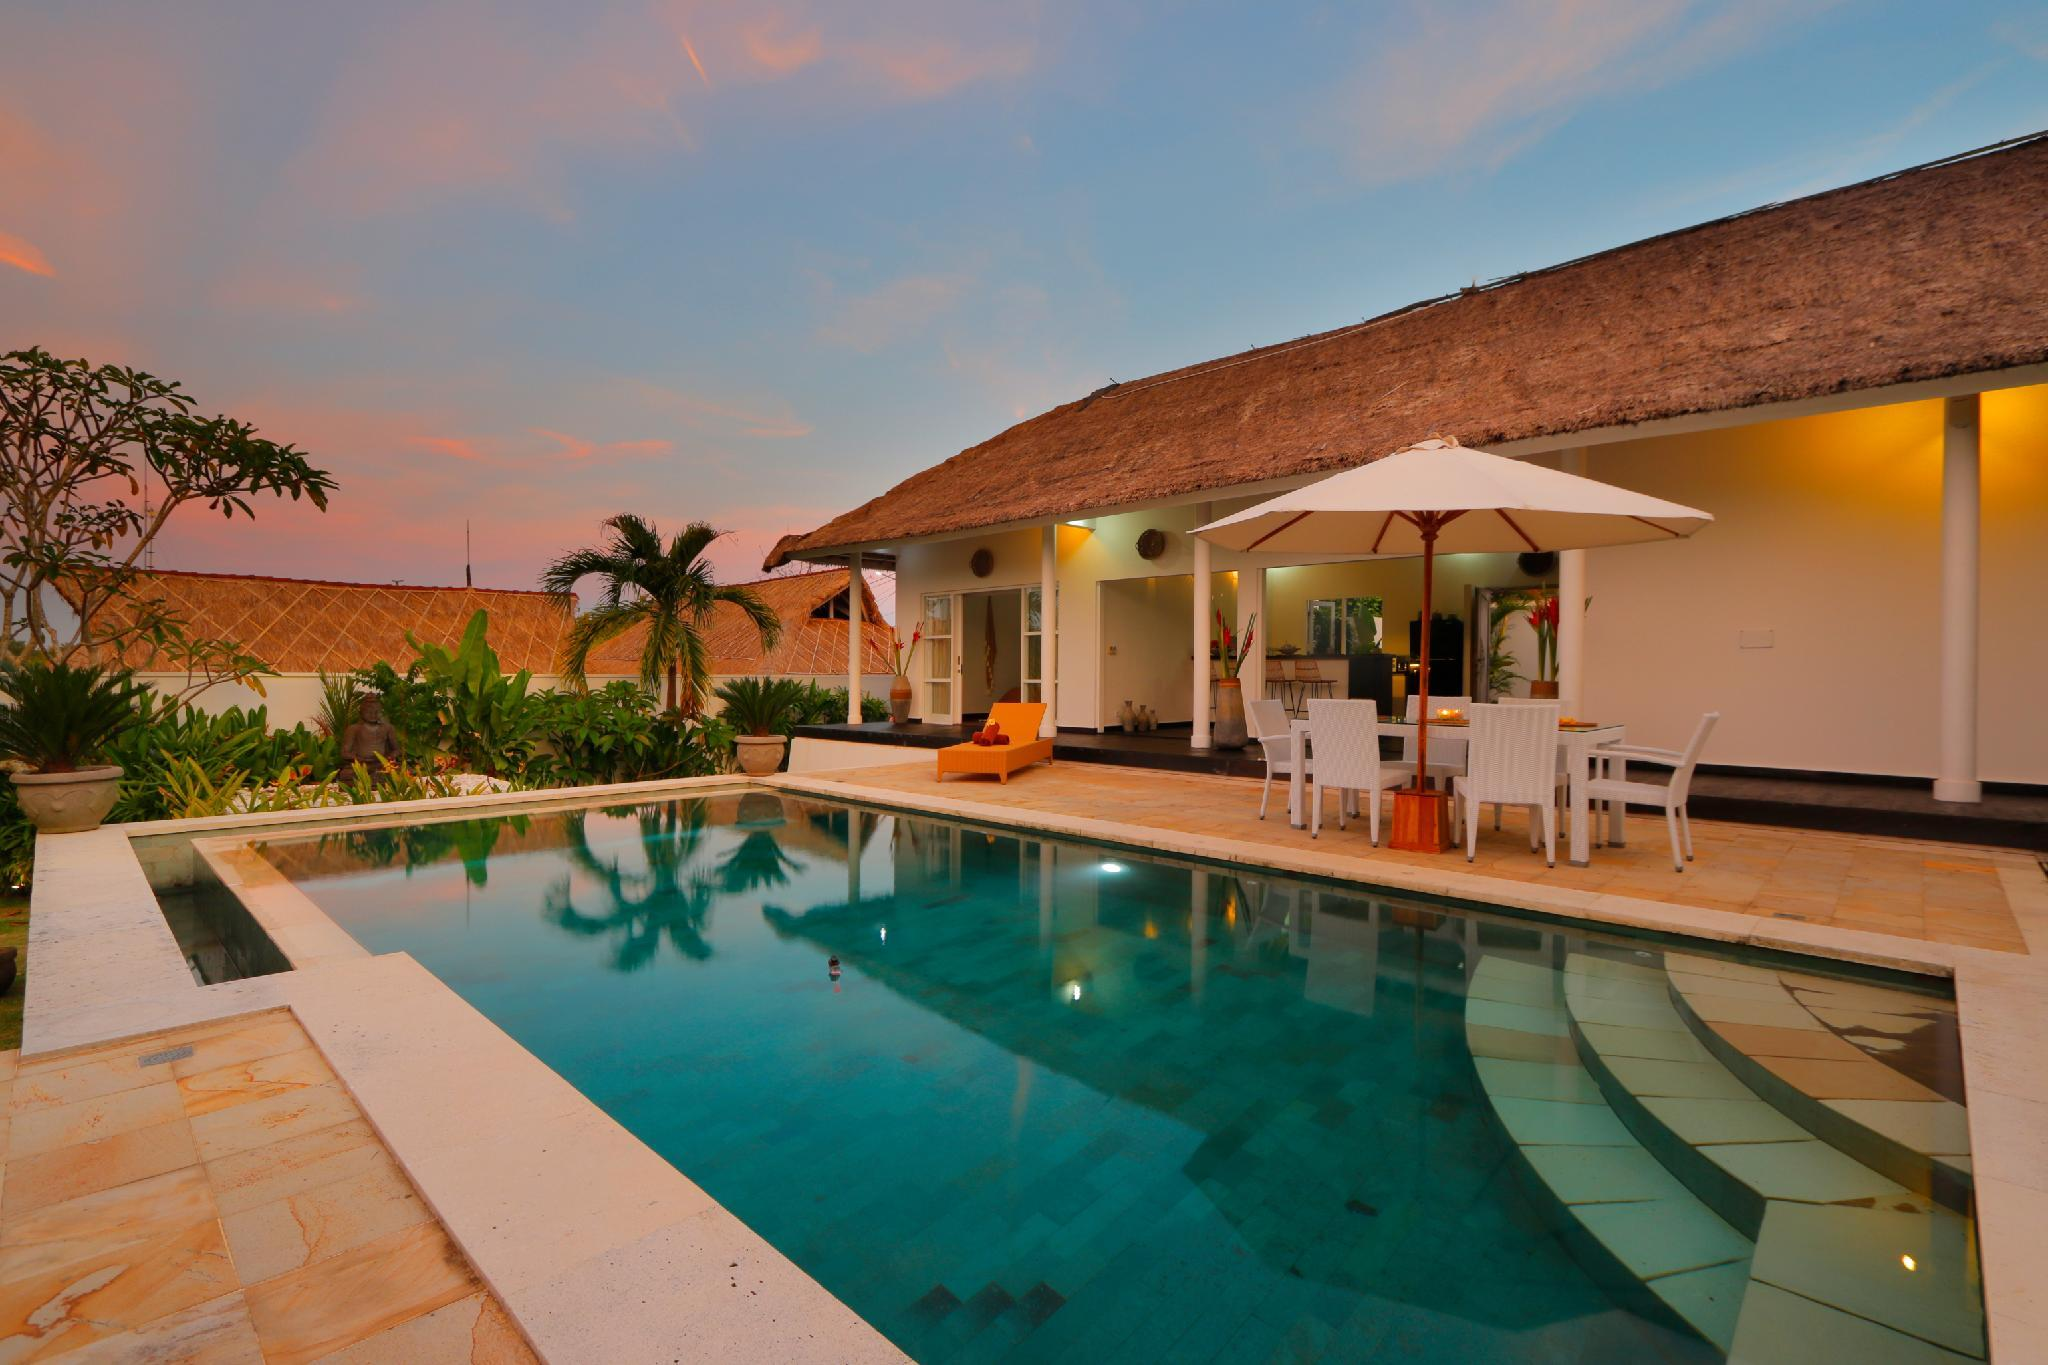 Villa 5 Min From Bali's Most Famous Beaches